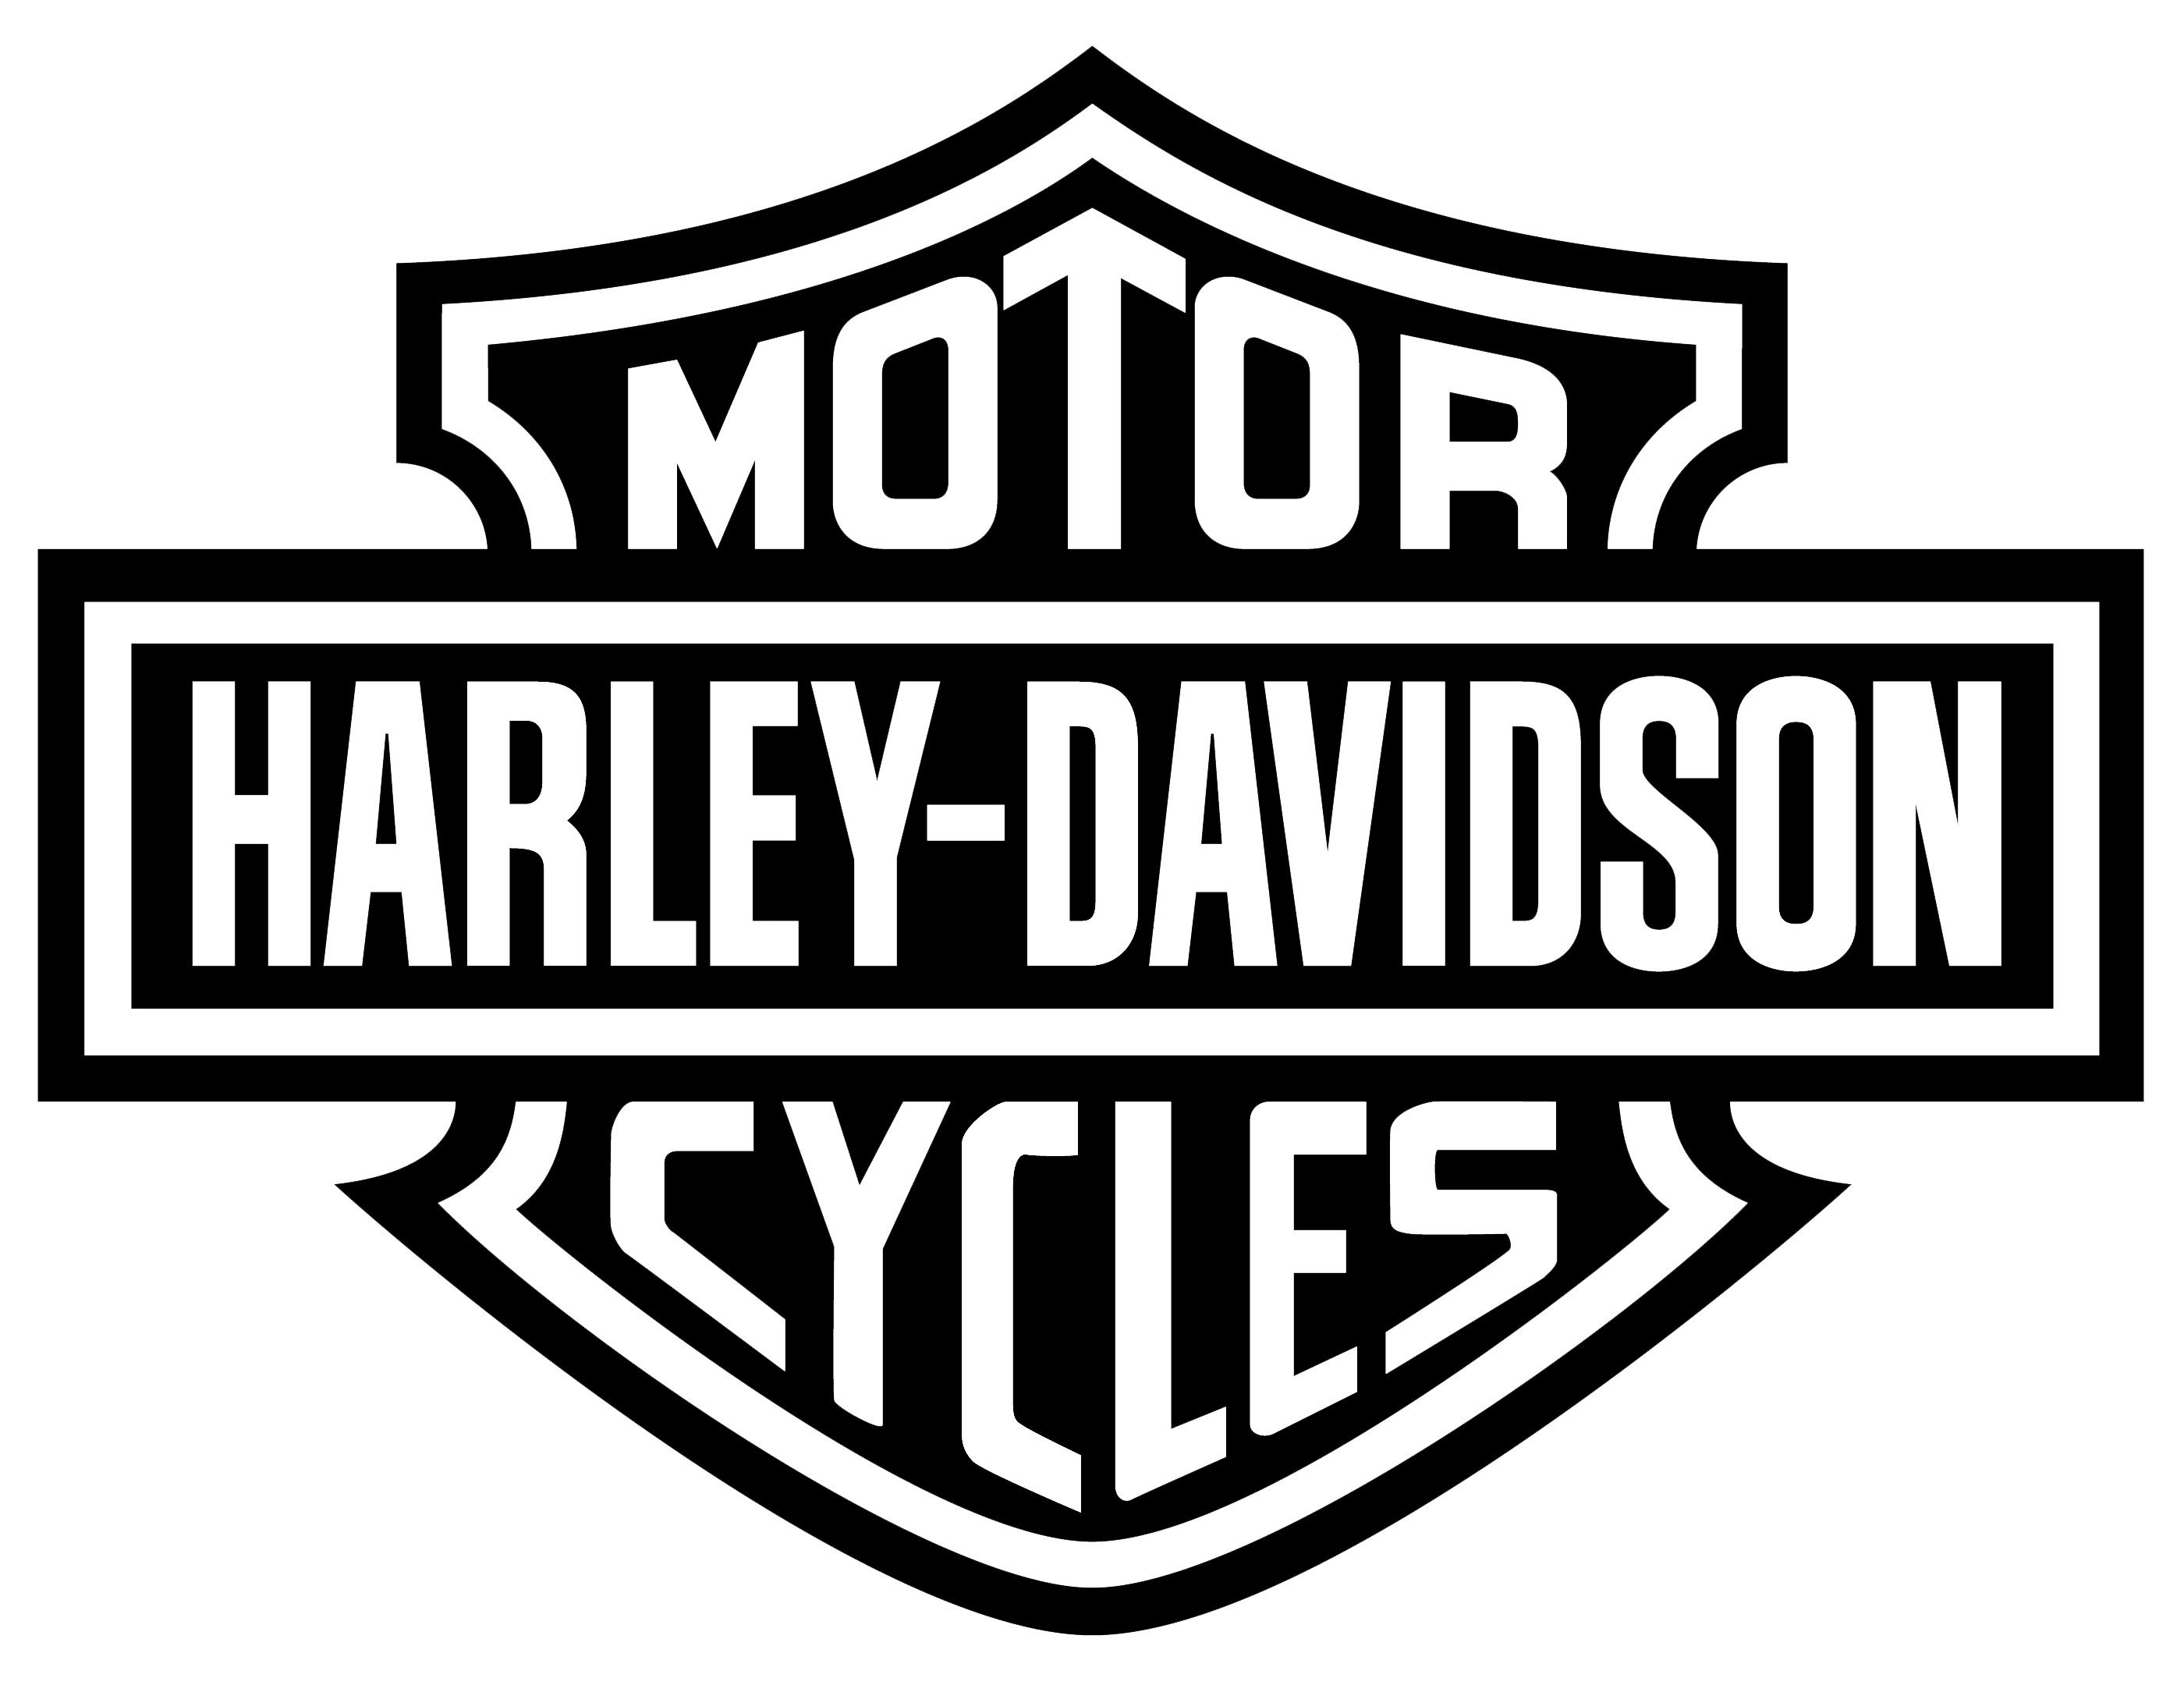 Harley Davidson Log: Harley-Davidson Motorcycle Logo History And Meaning, Bike